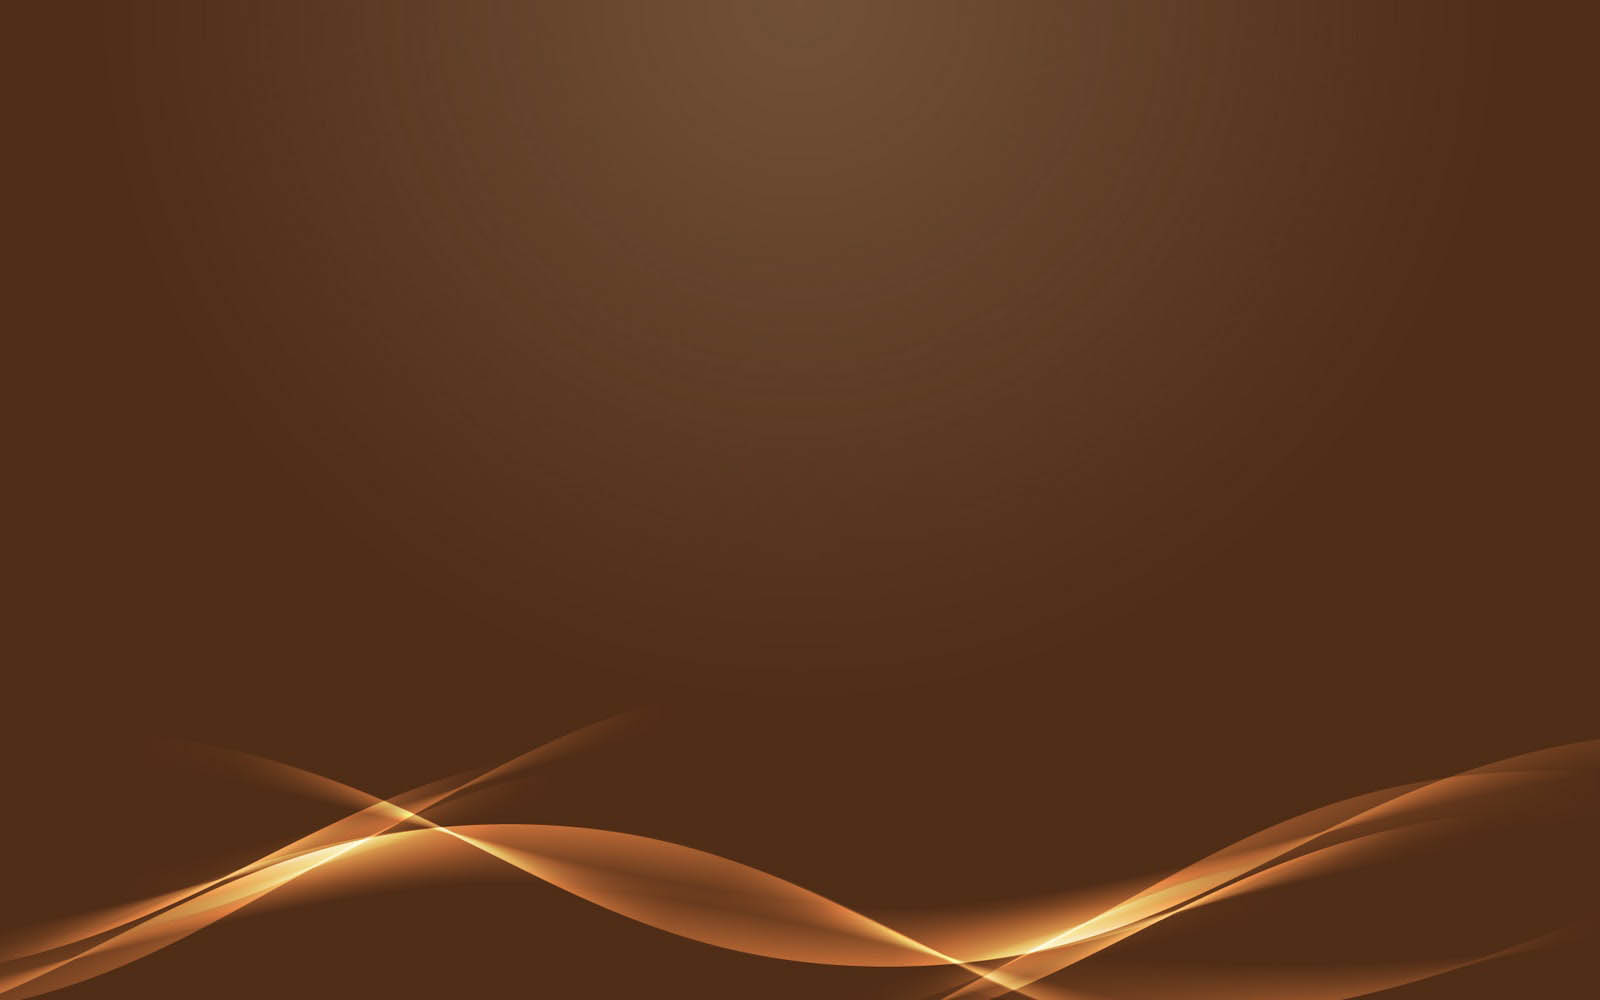 Tag Brown Wallpapers Backgrounds Photos Picturesand Images for 1600x1000